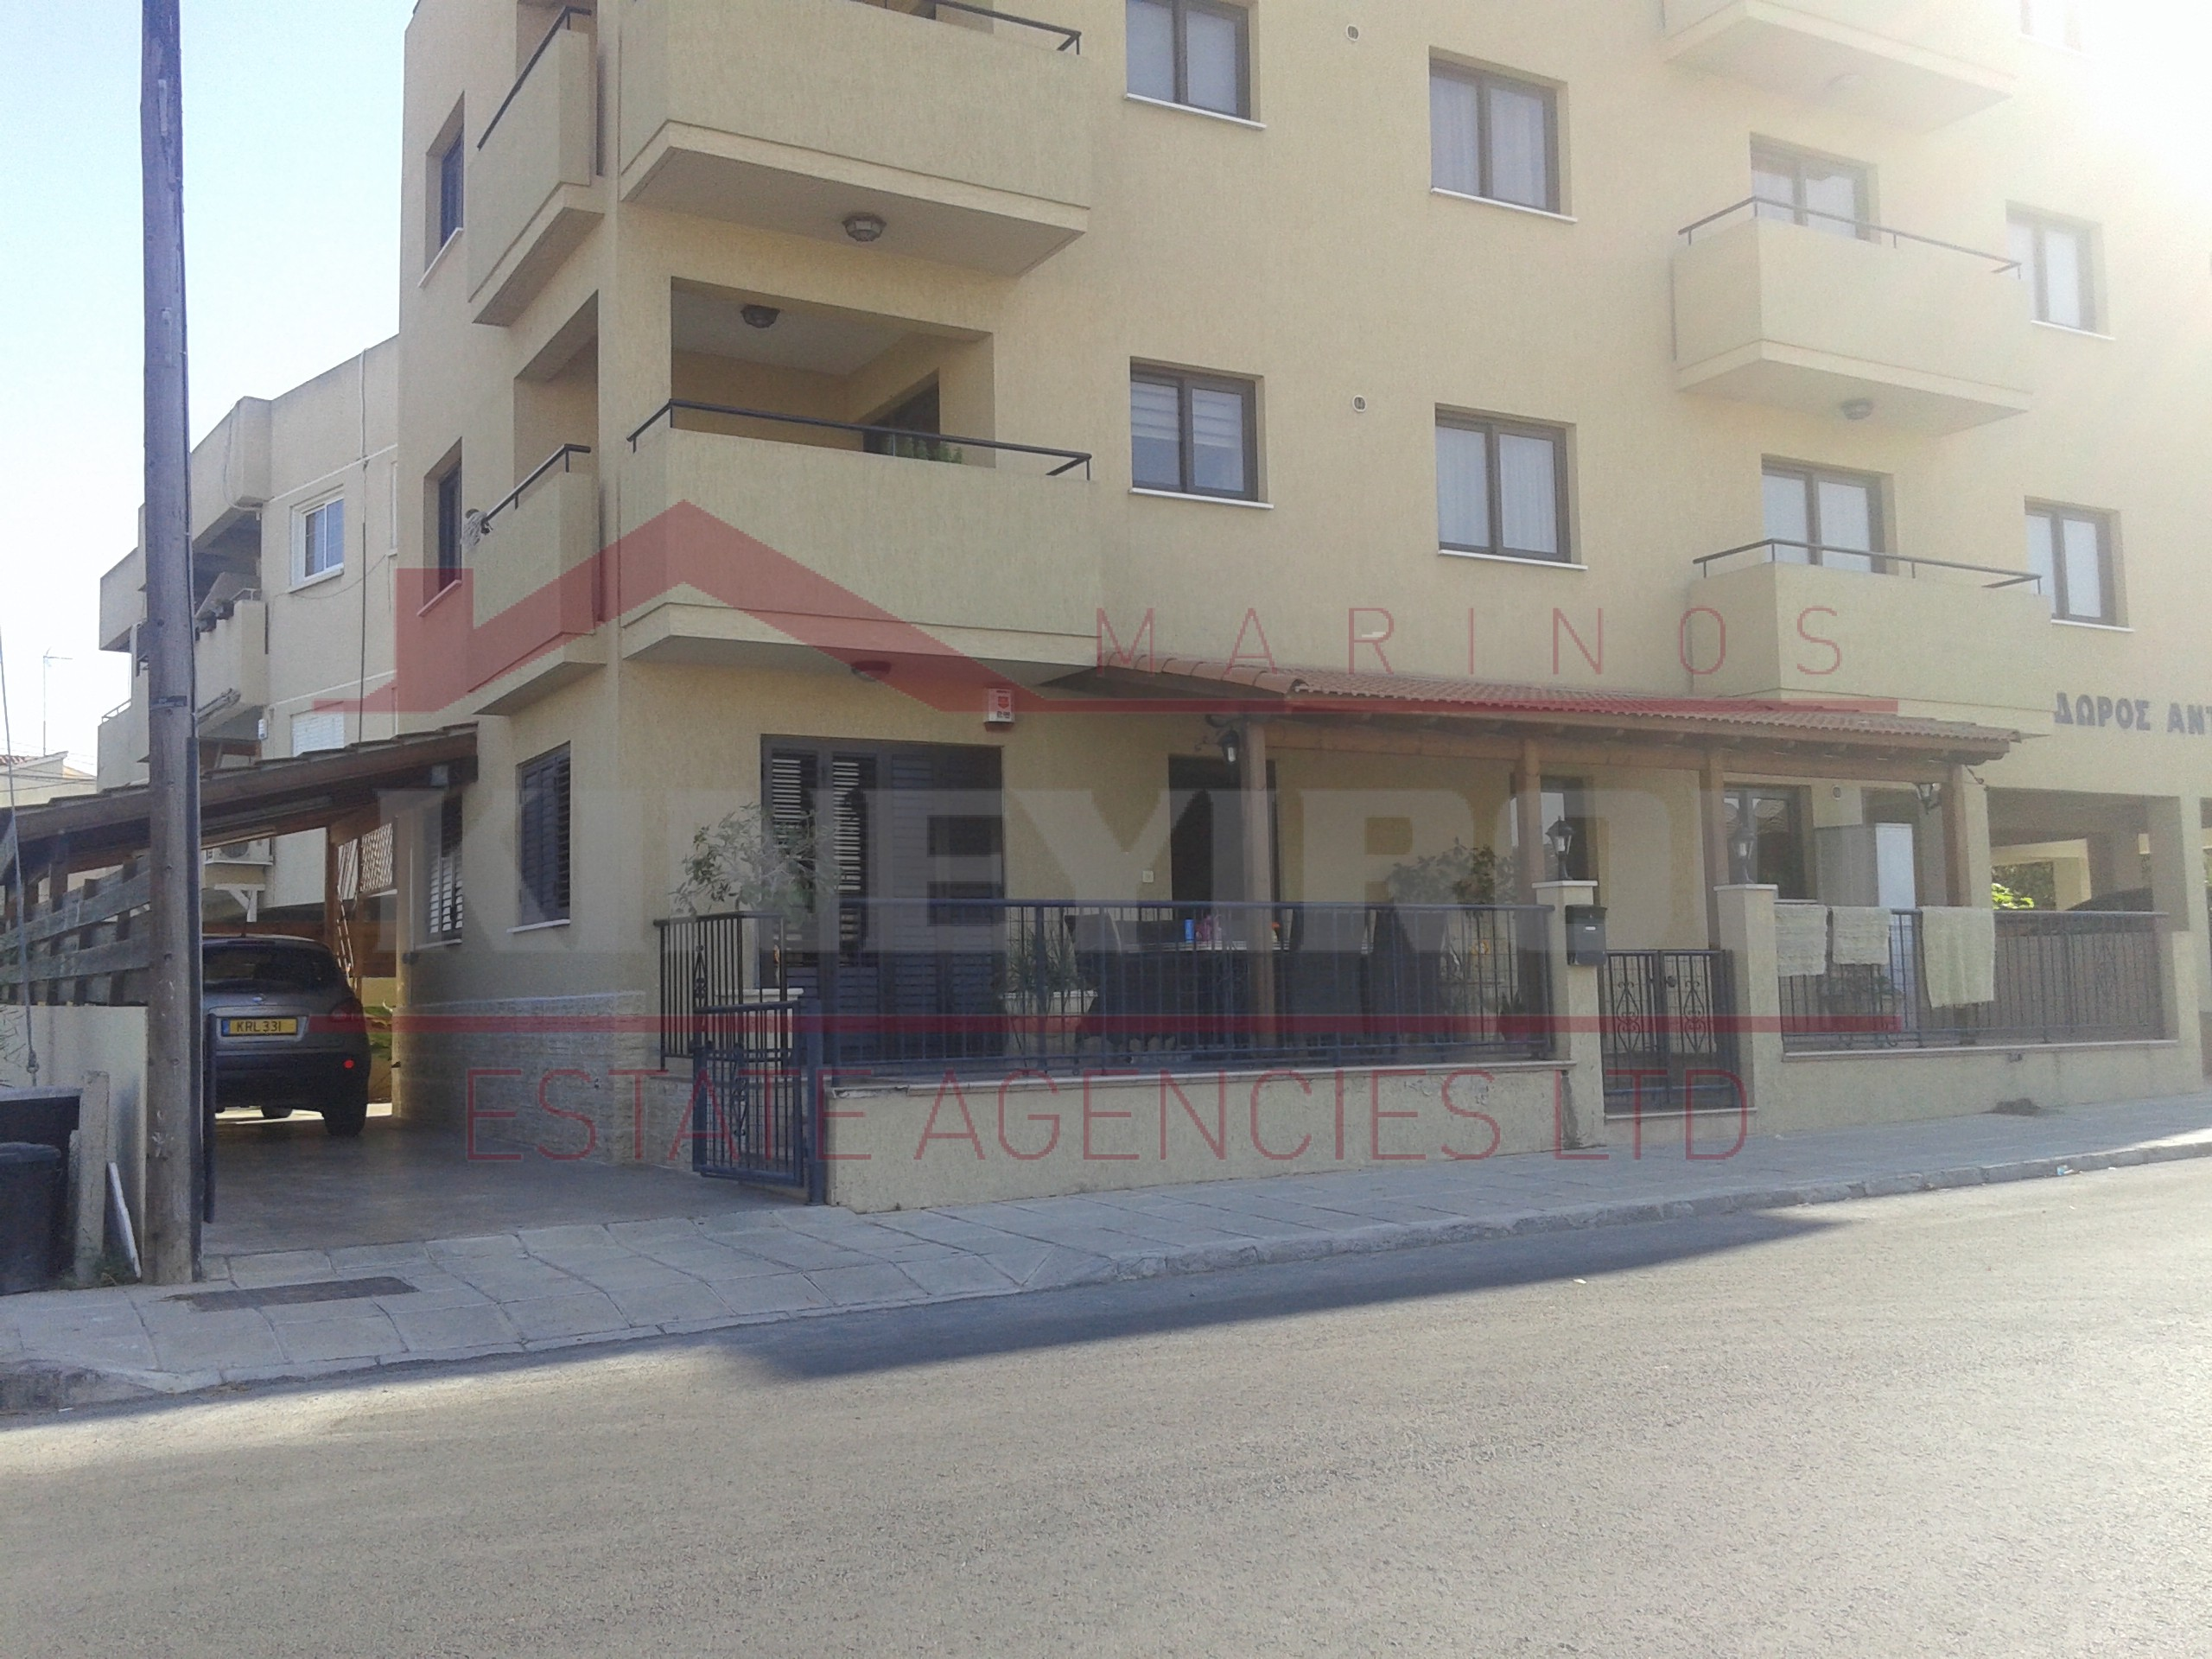 Luxury two bedroom apartment near Debenhams, Larnaca